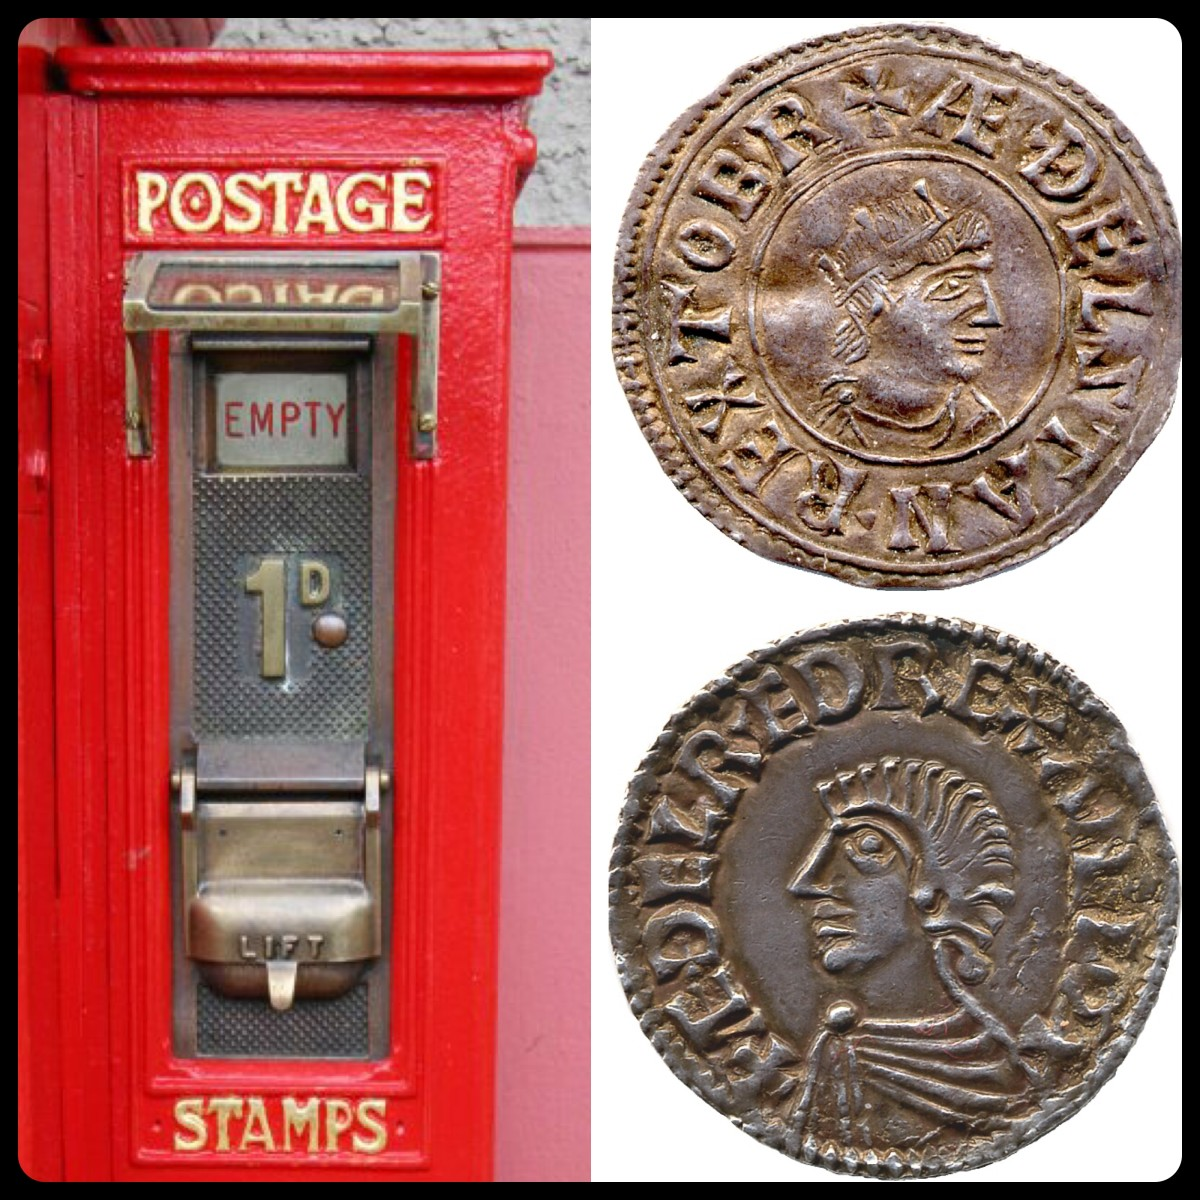 The Pre-Decimal Penny in UK History and Culture Owlcation